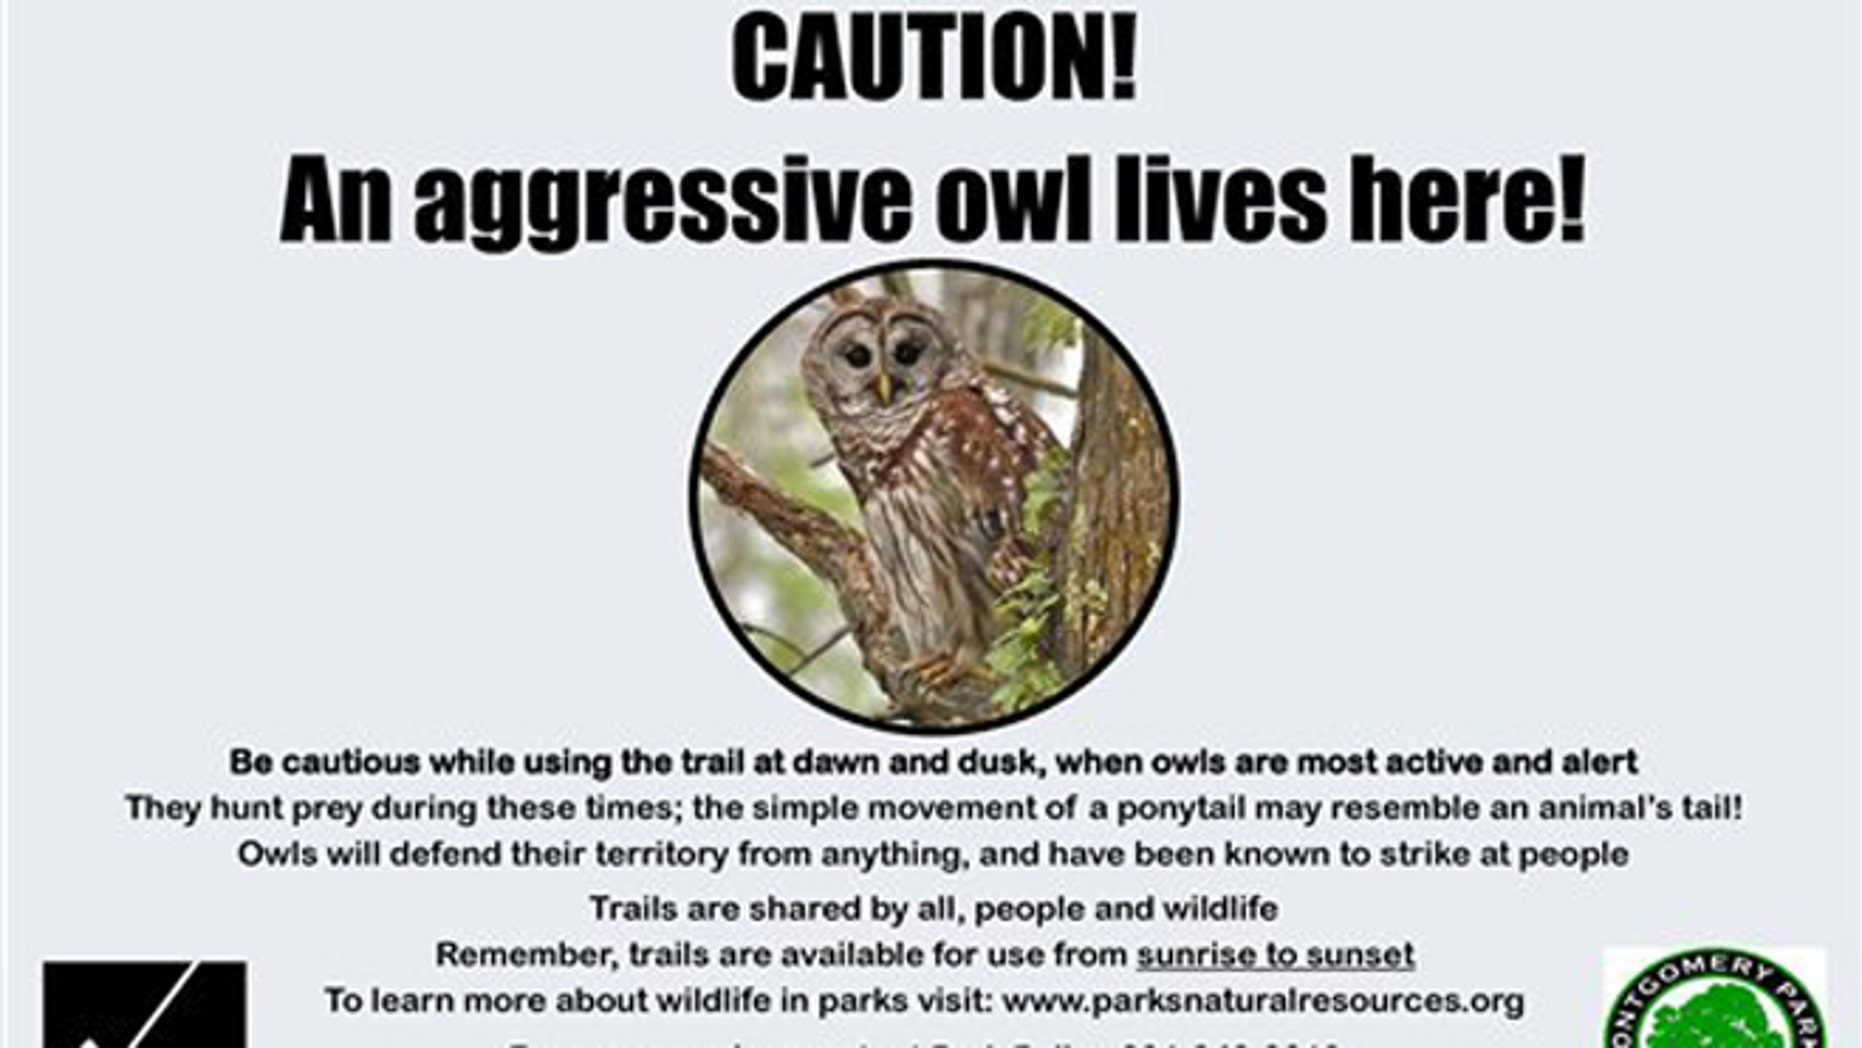 Oct. 14, 2105: This image provided by the Montgomery County, Md., Department of Parks shows the warning sign on the Capital Crescent Trail in Bethesda, Md. warning users about owl attacks.